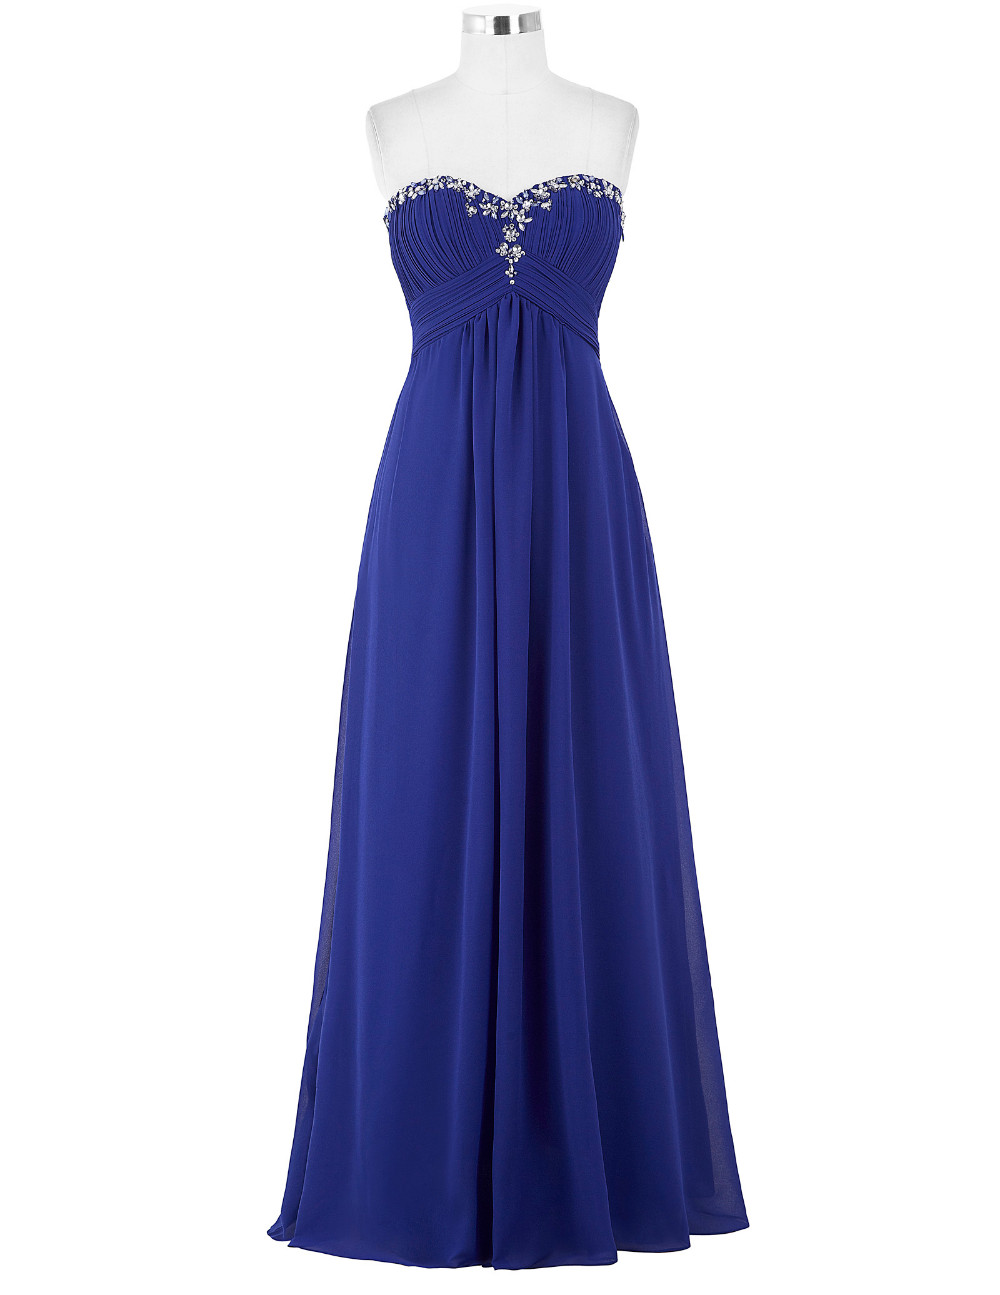 Lavender Green Royal Blue Long Chiffon Bridesmaid Dress 7